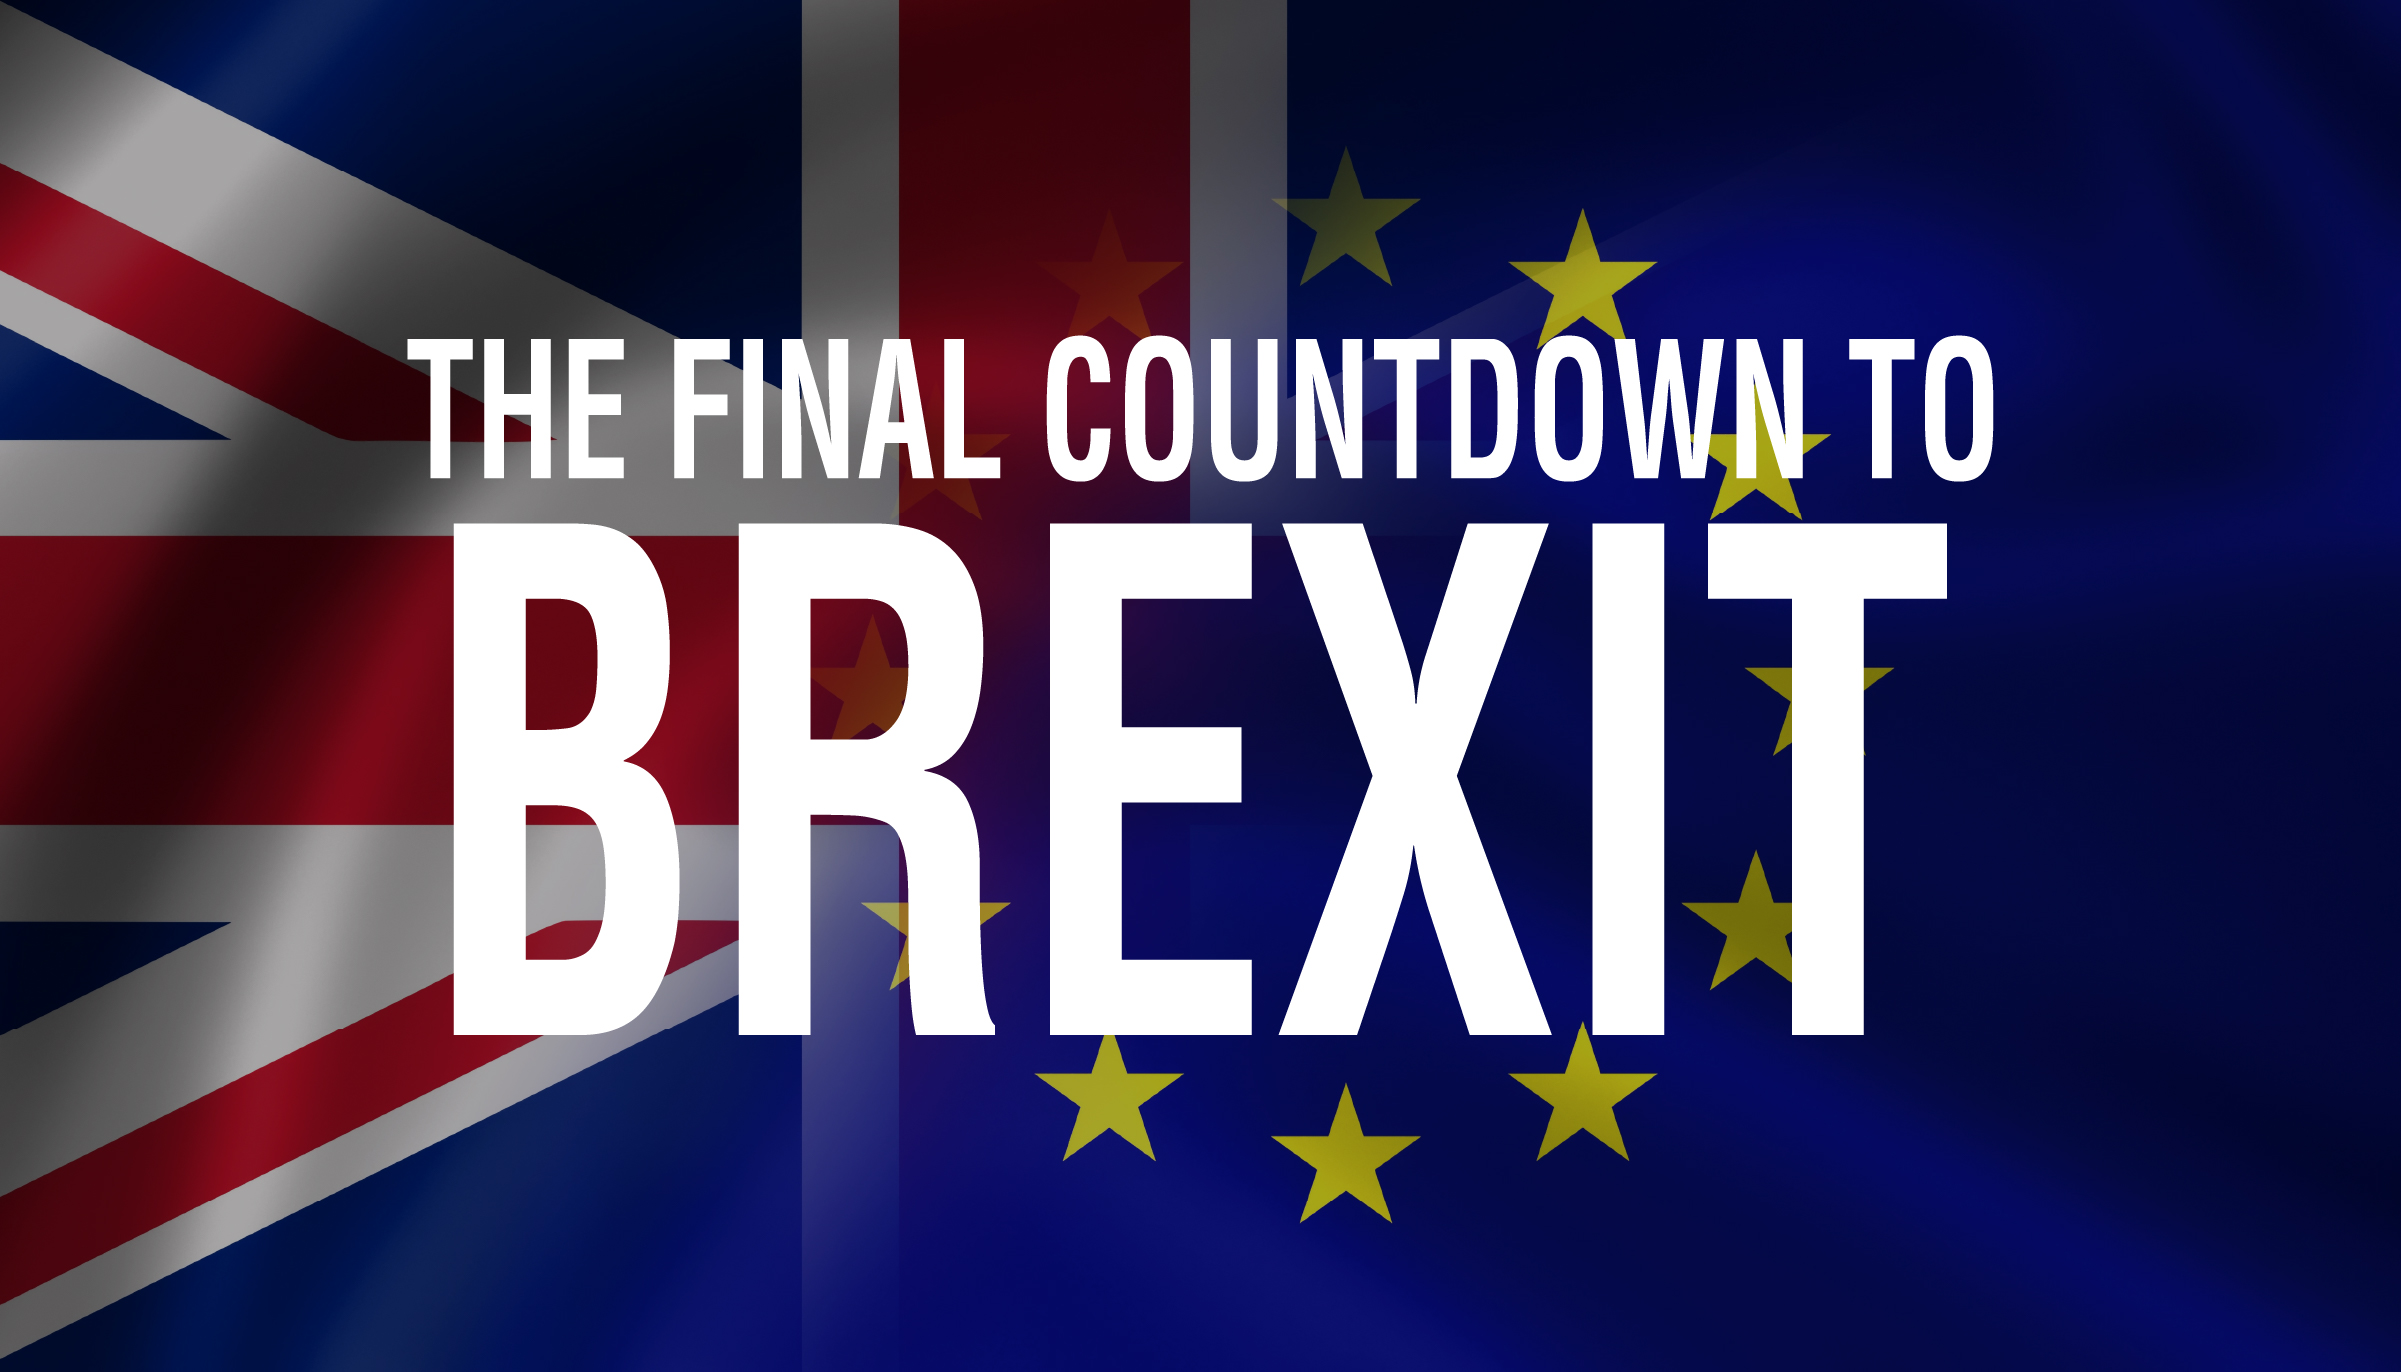 The Final Countdown: Are Retailers Cutting It Fine With Their Brexit Preparedness?